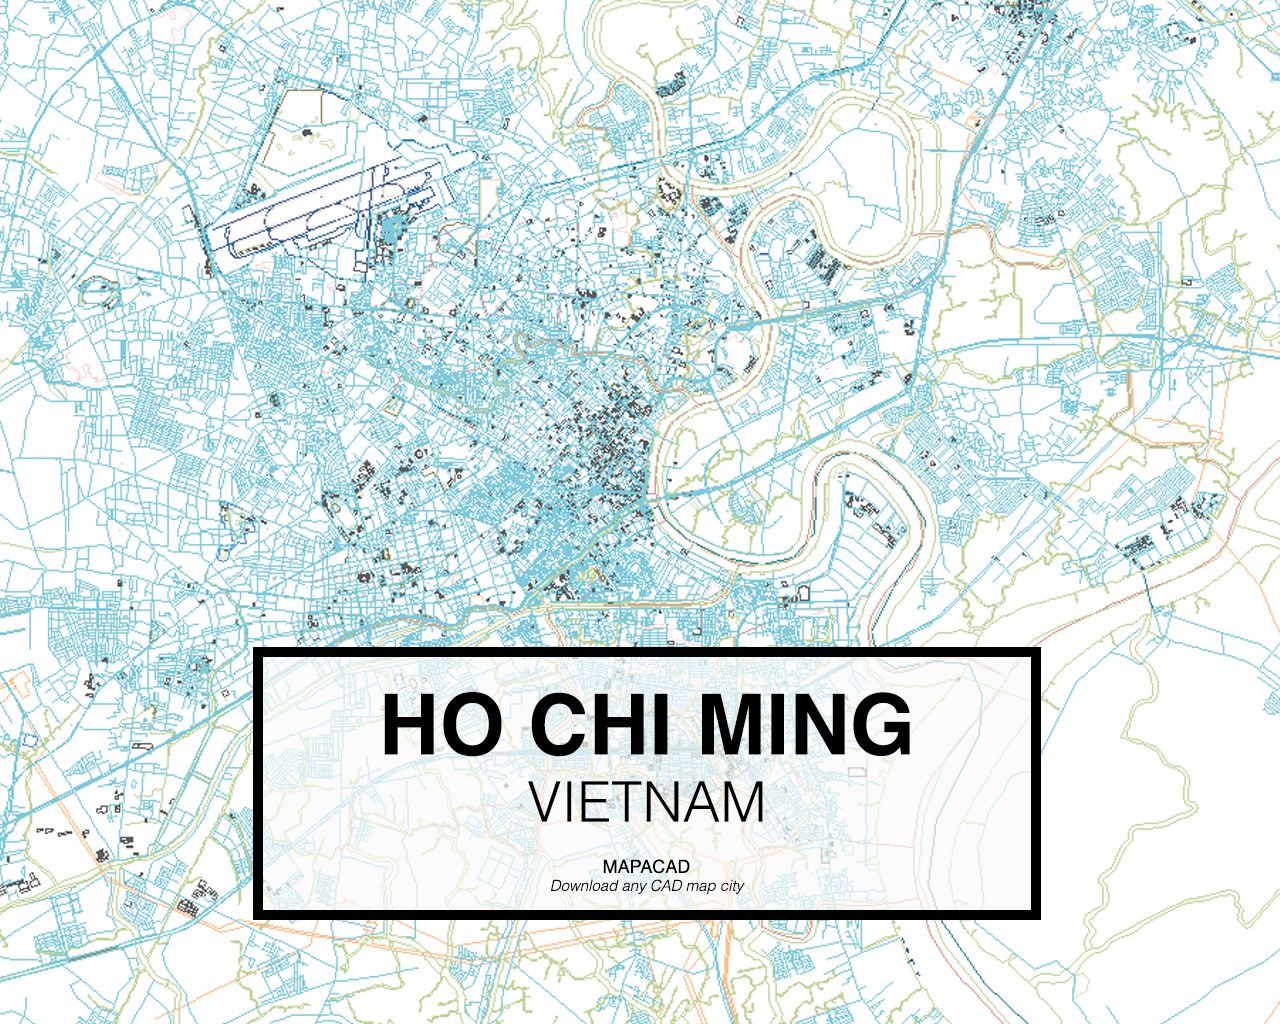 Download any cad map city mapacad ho chi ming vietman 01 mapacad download map gumiabroncs Images